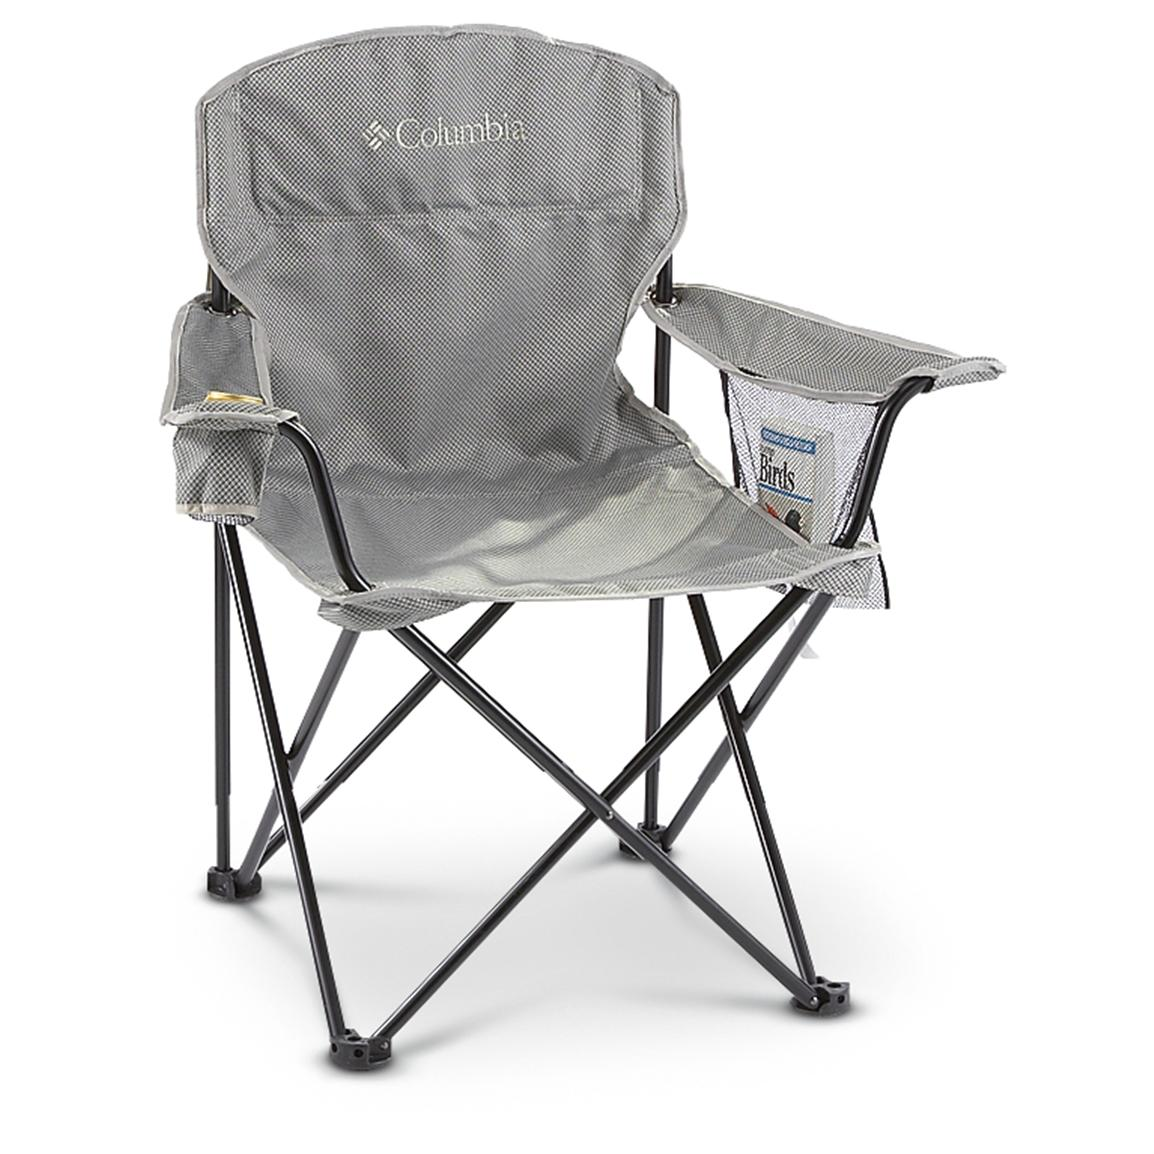 Campfire Chairs Columbia Trek And Travel Camp Chair 182028 Chairs At